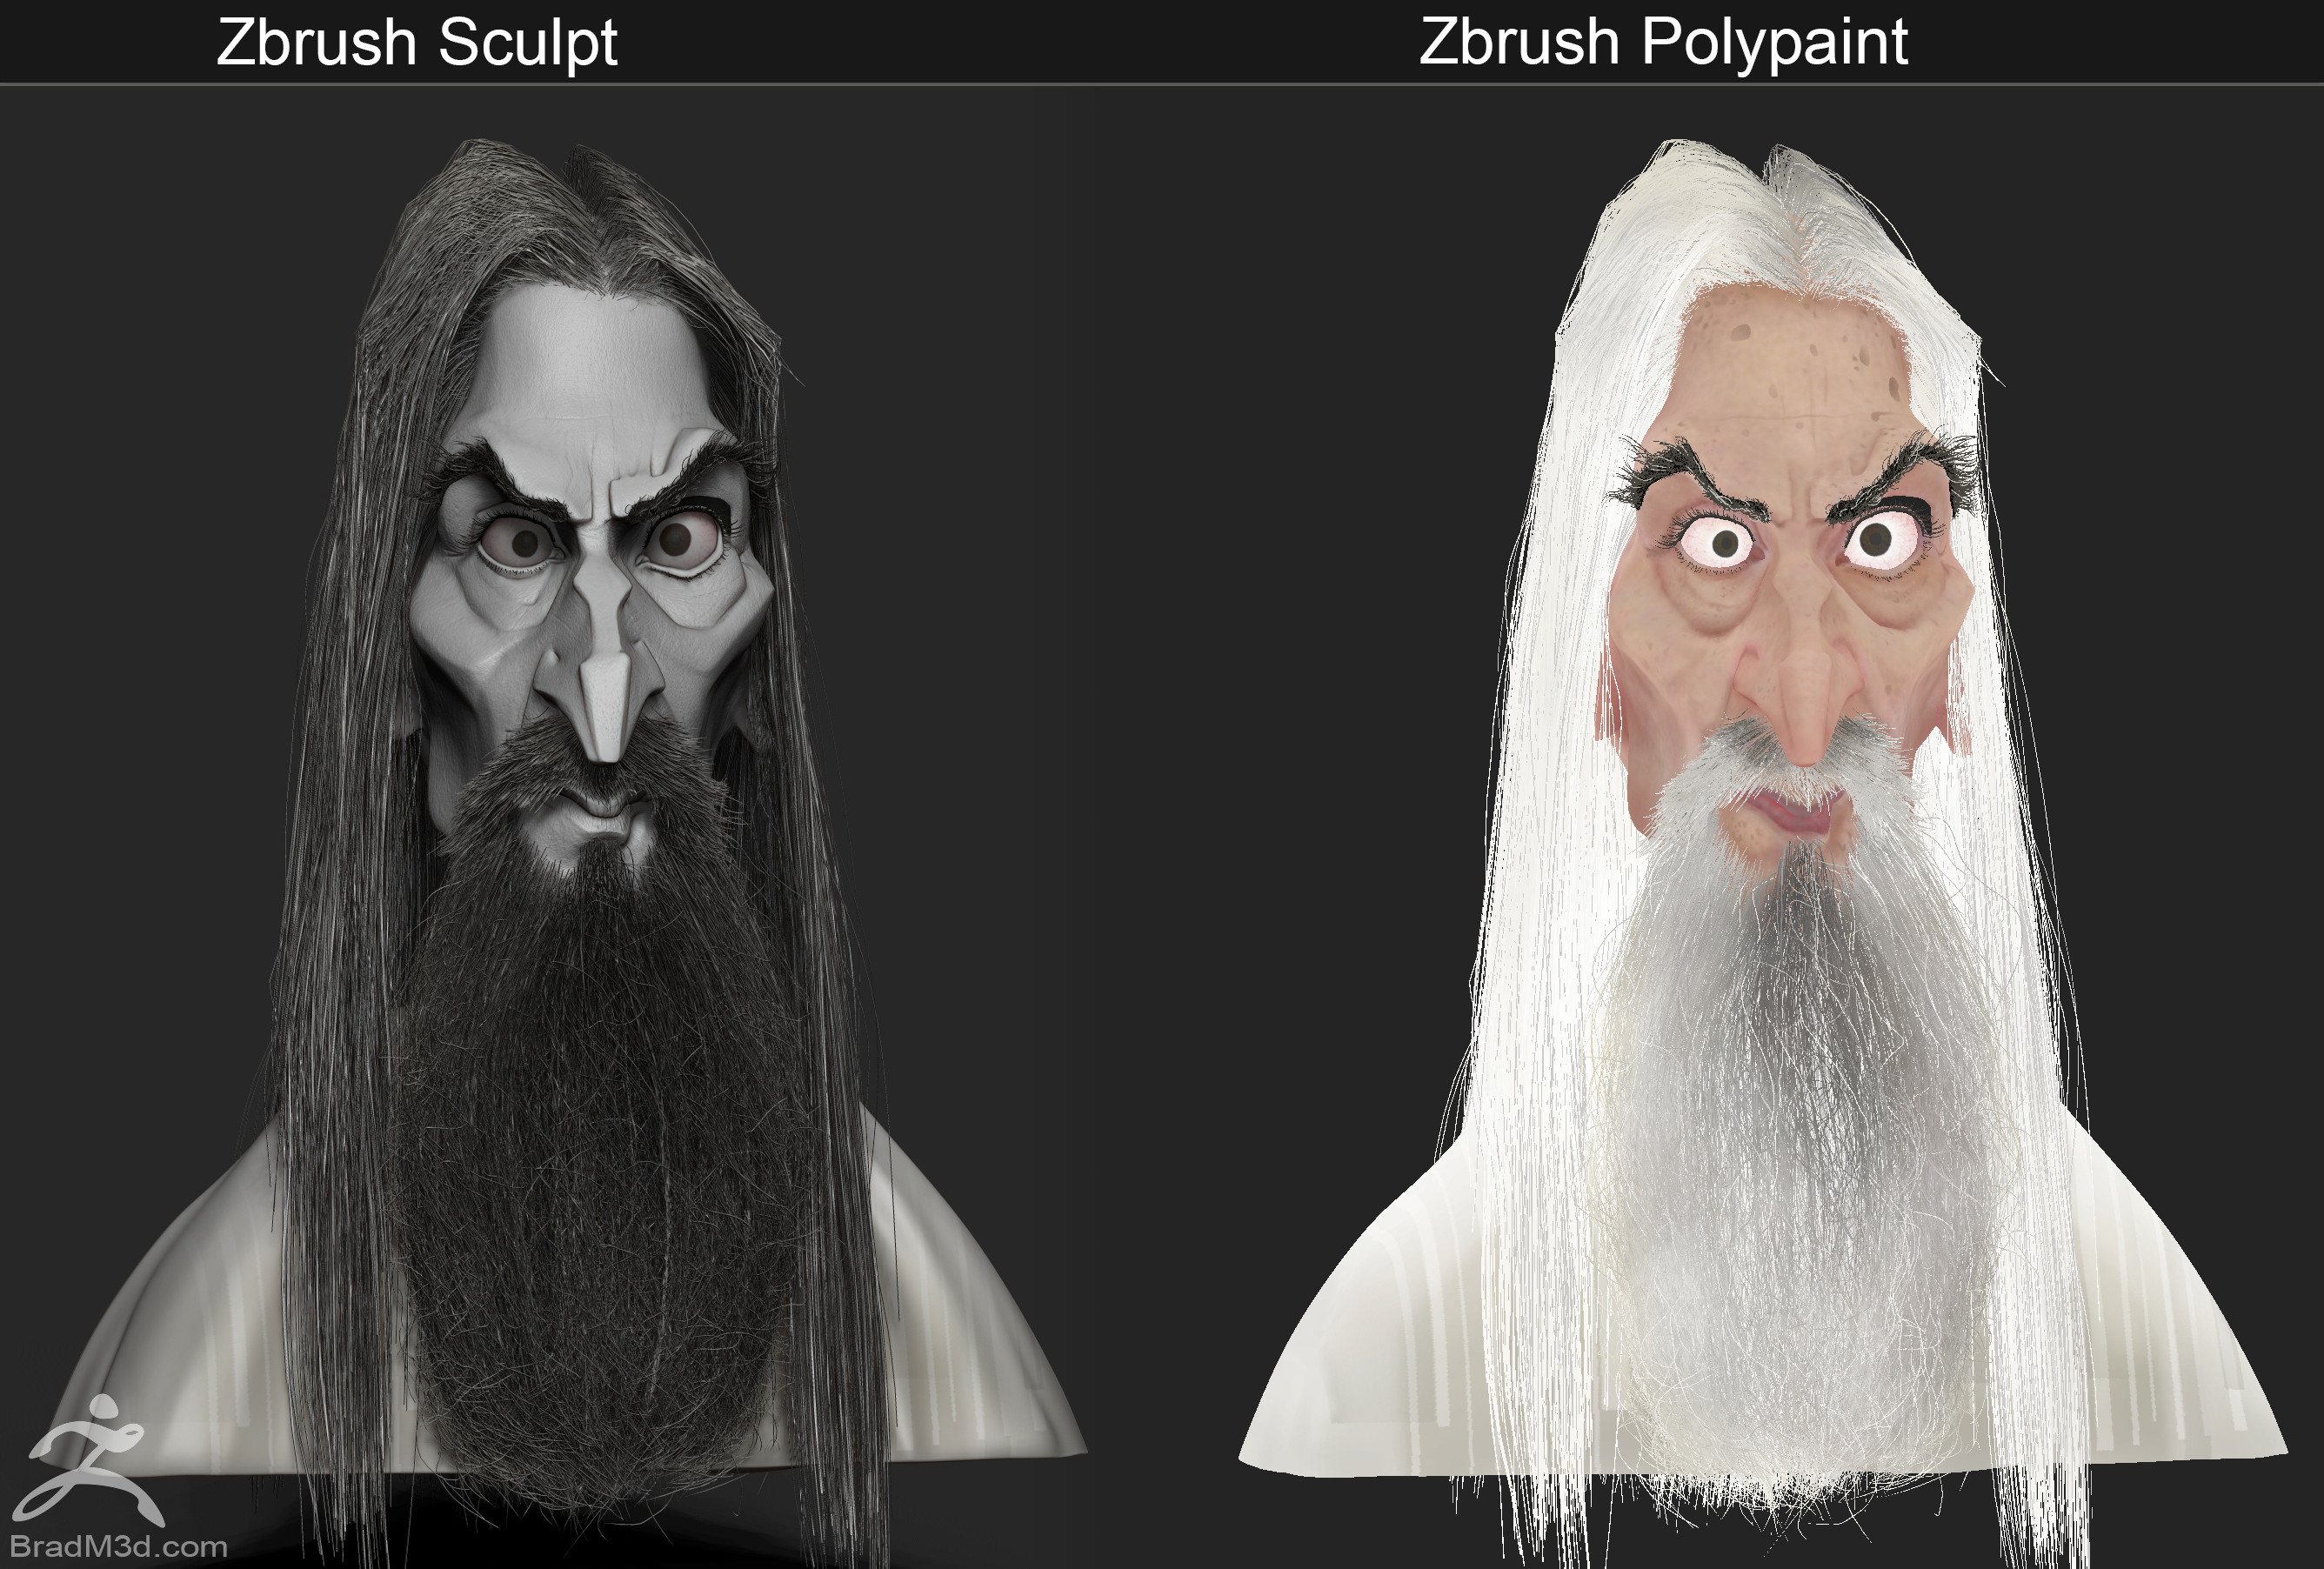 Simple Zbrush Sculpt BPR Render and Flat Shaded polypaint demo